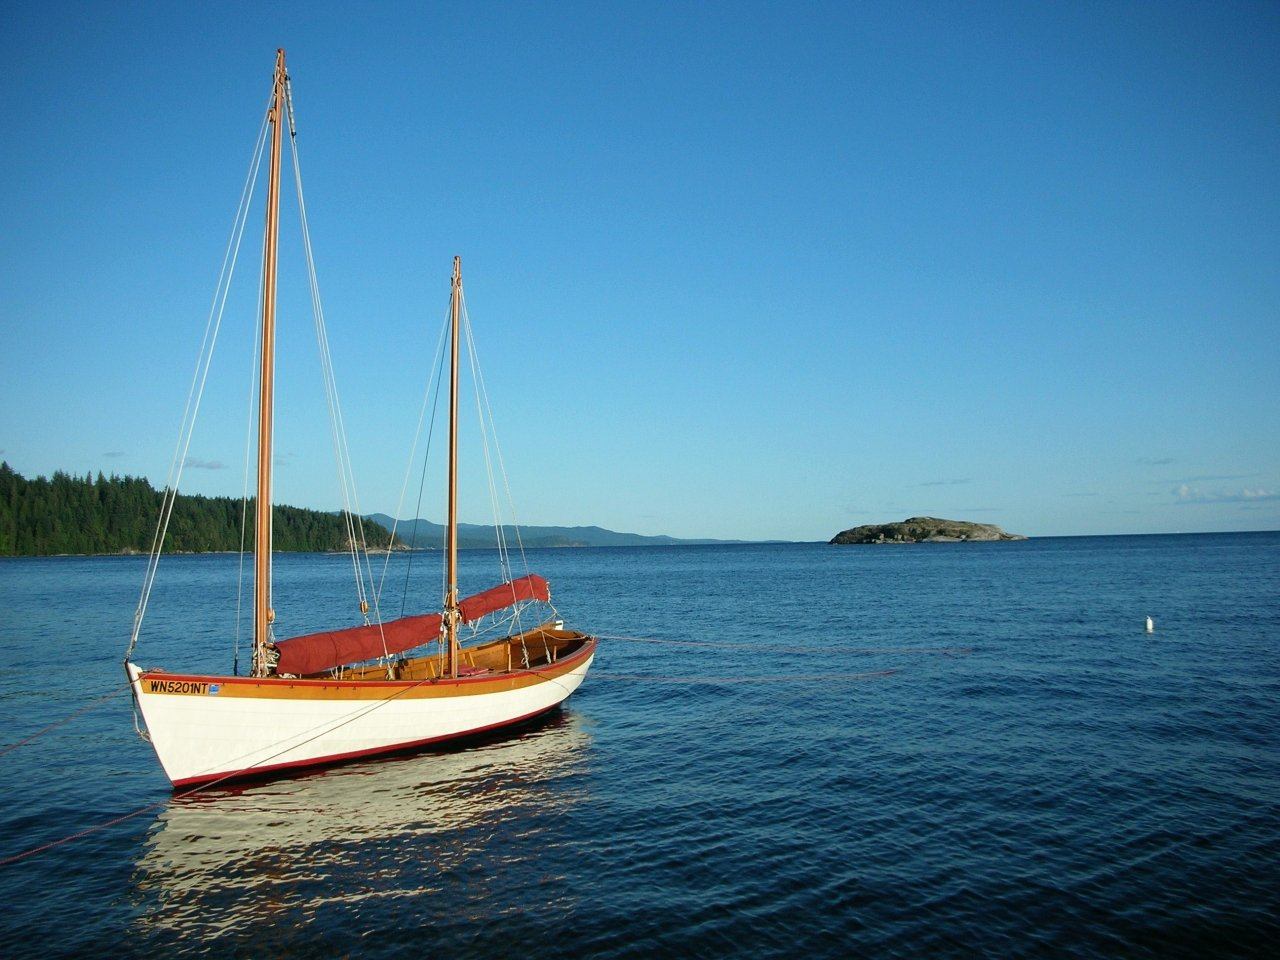 The Sailboat Plans Blog: Why Wooden Boat Plans Are Easy as well as Fun ...